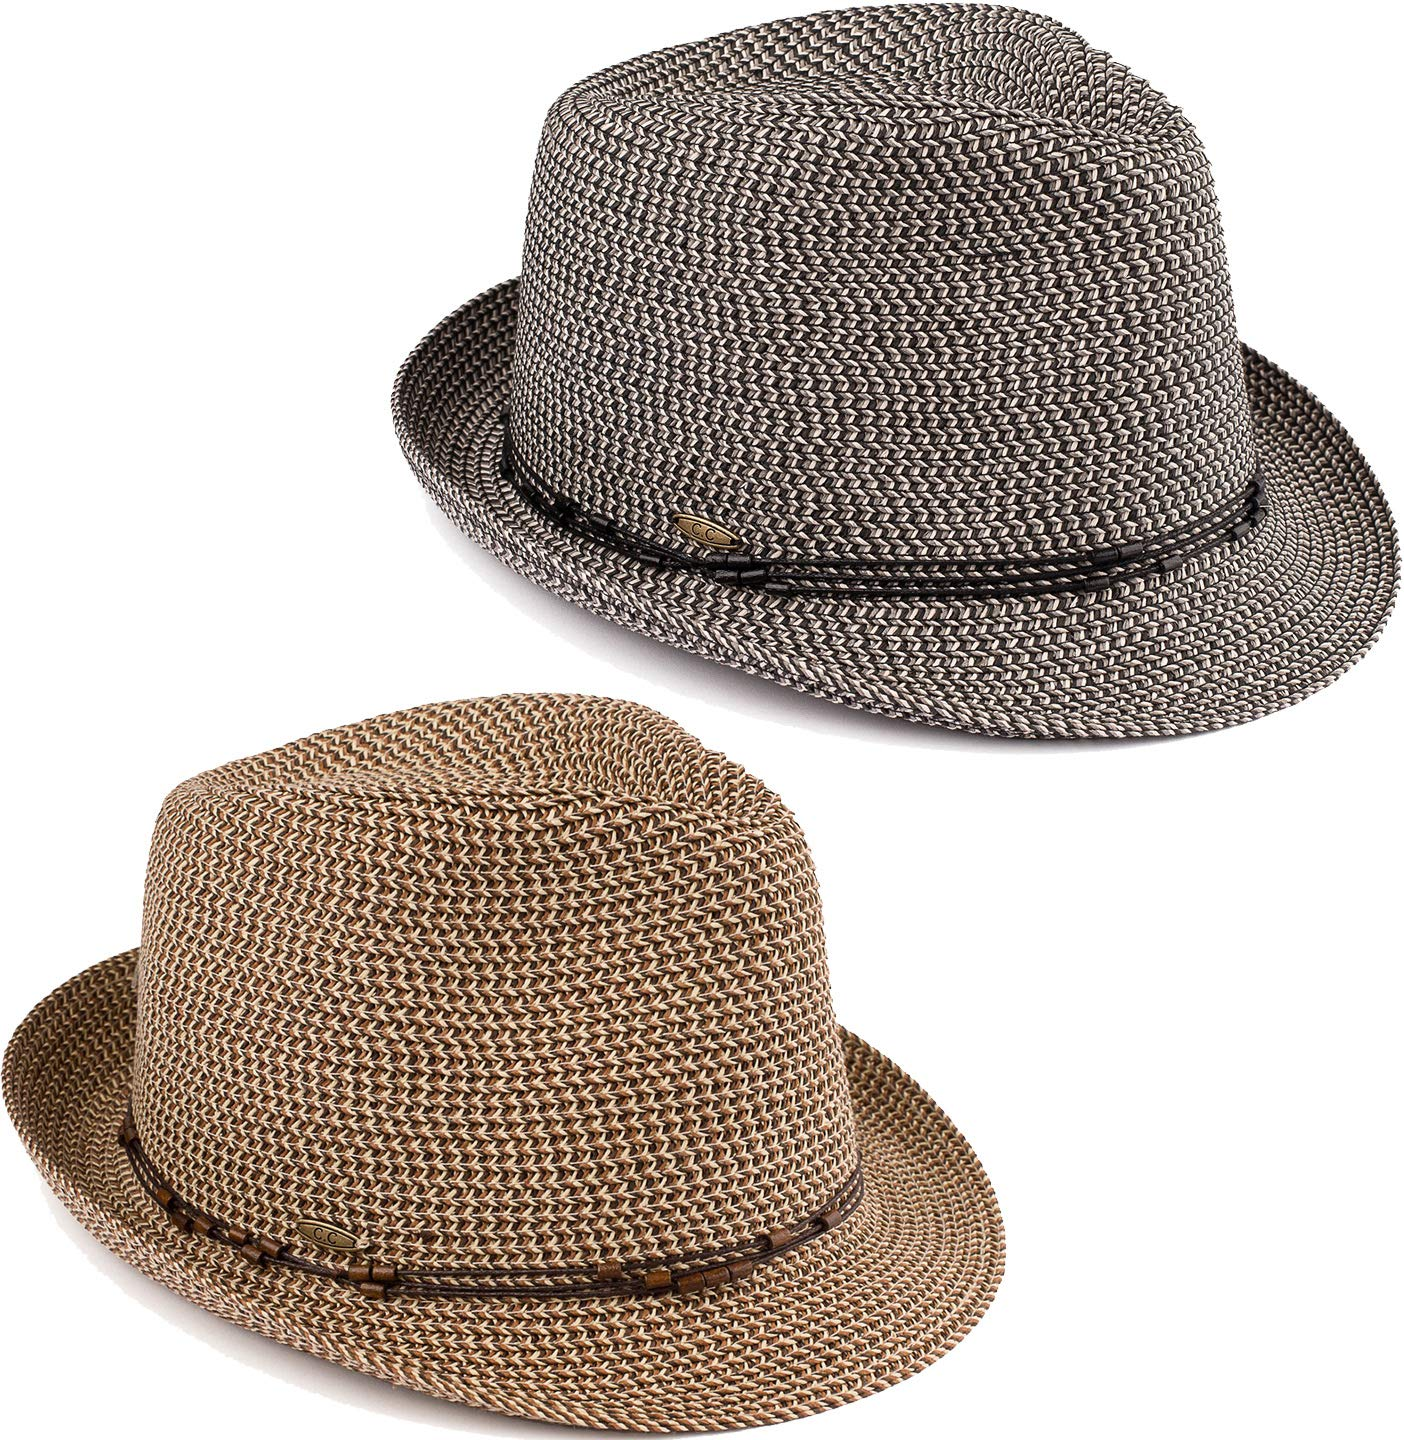 H-6108-2-5030607 Fedora Bundle: 2 Pack - Black & Brown w/Beaded Ropes